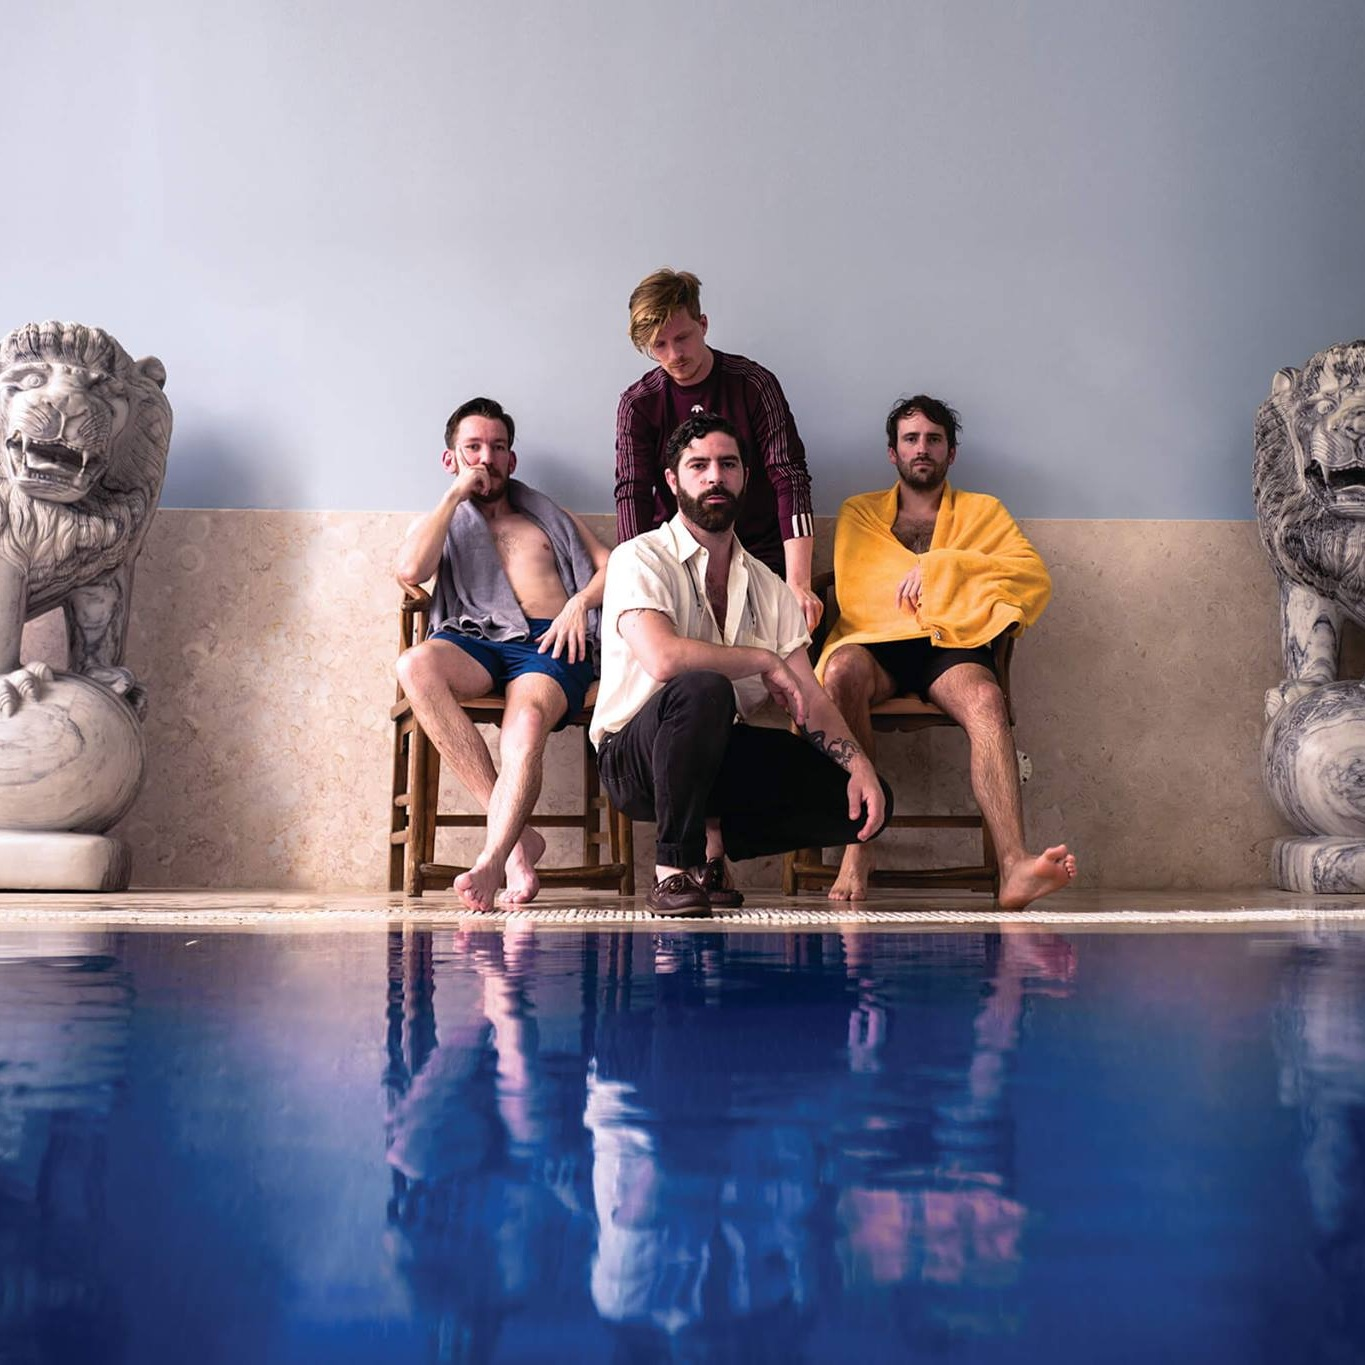 FOALS, SYDNEY 17/07/2019 -  COME RIDE THE OLYMPIC AIRWAYS!